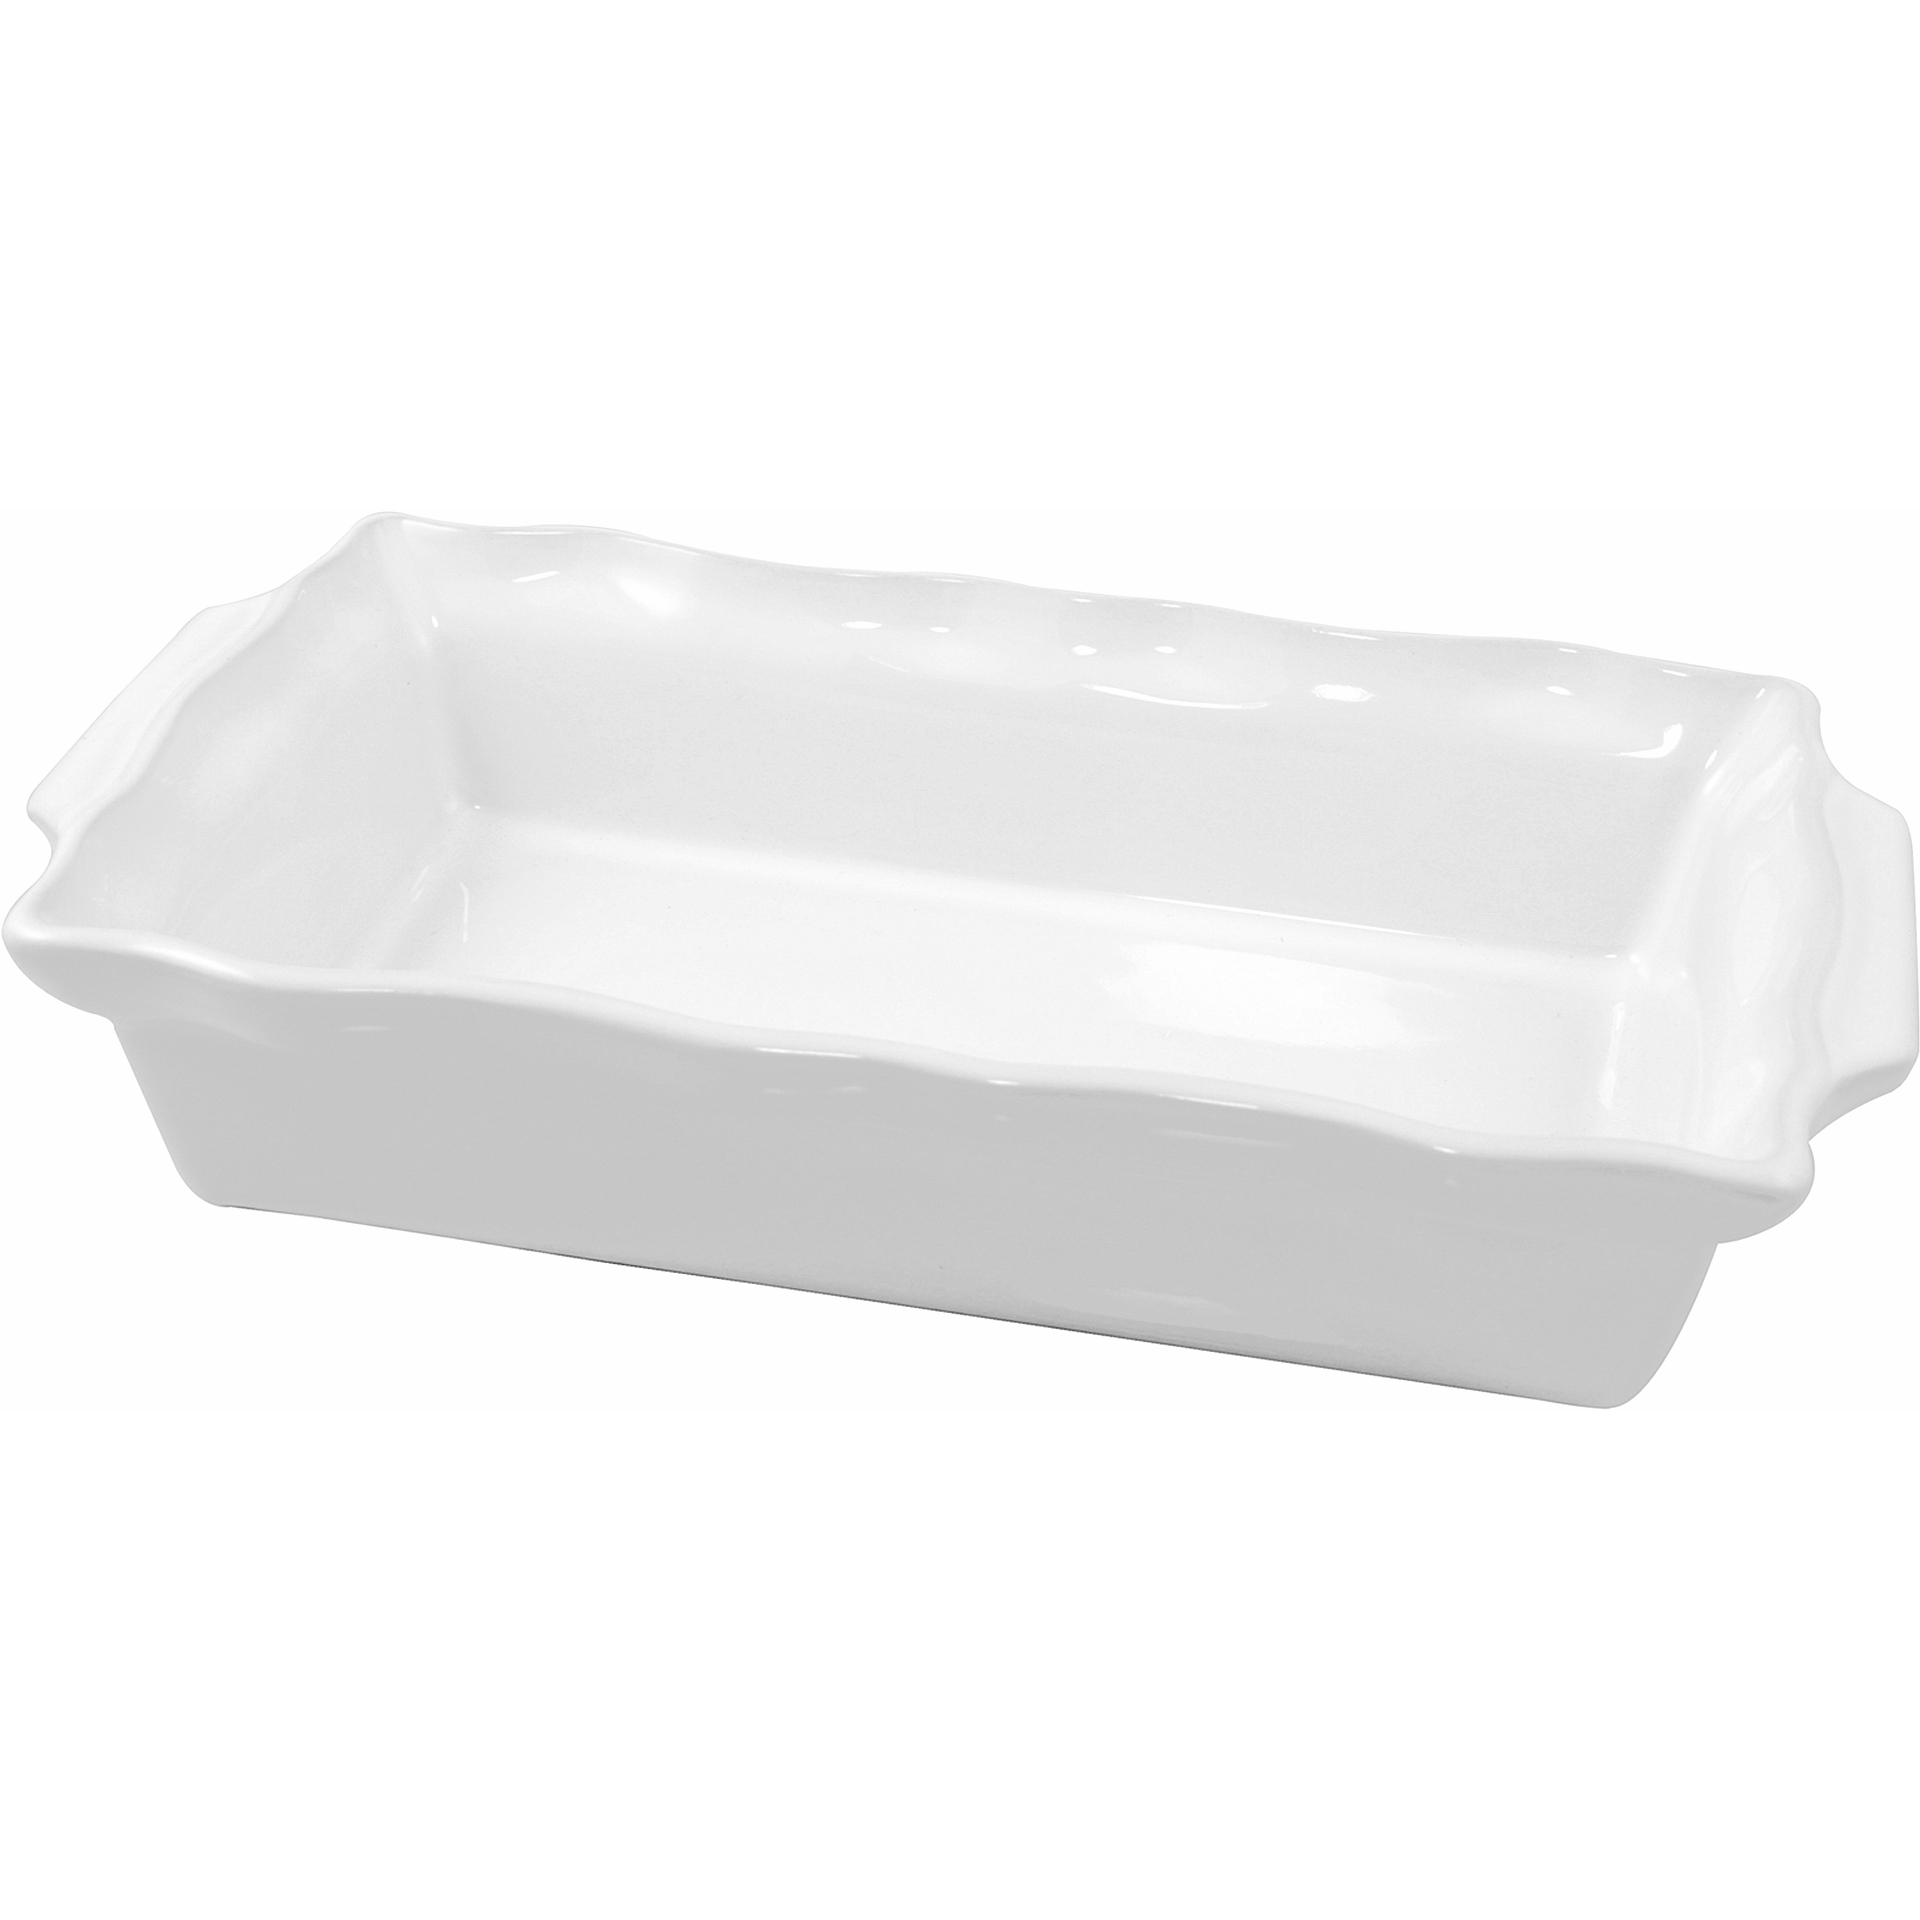 Le Cordon Bleu Paris By Swissmar Rectangular Blanc Ceramic 1.7 Quart Roasting Dish